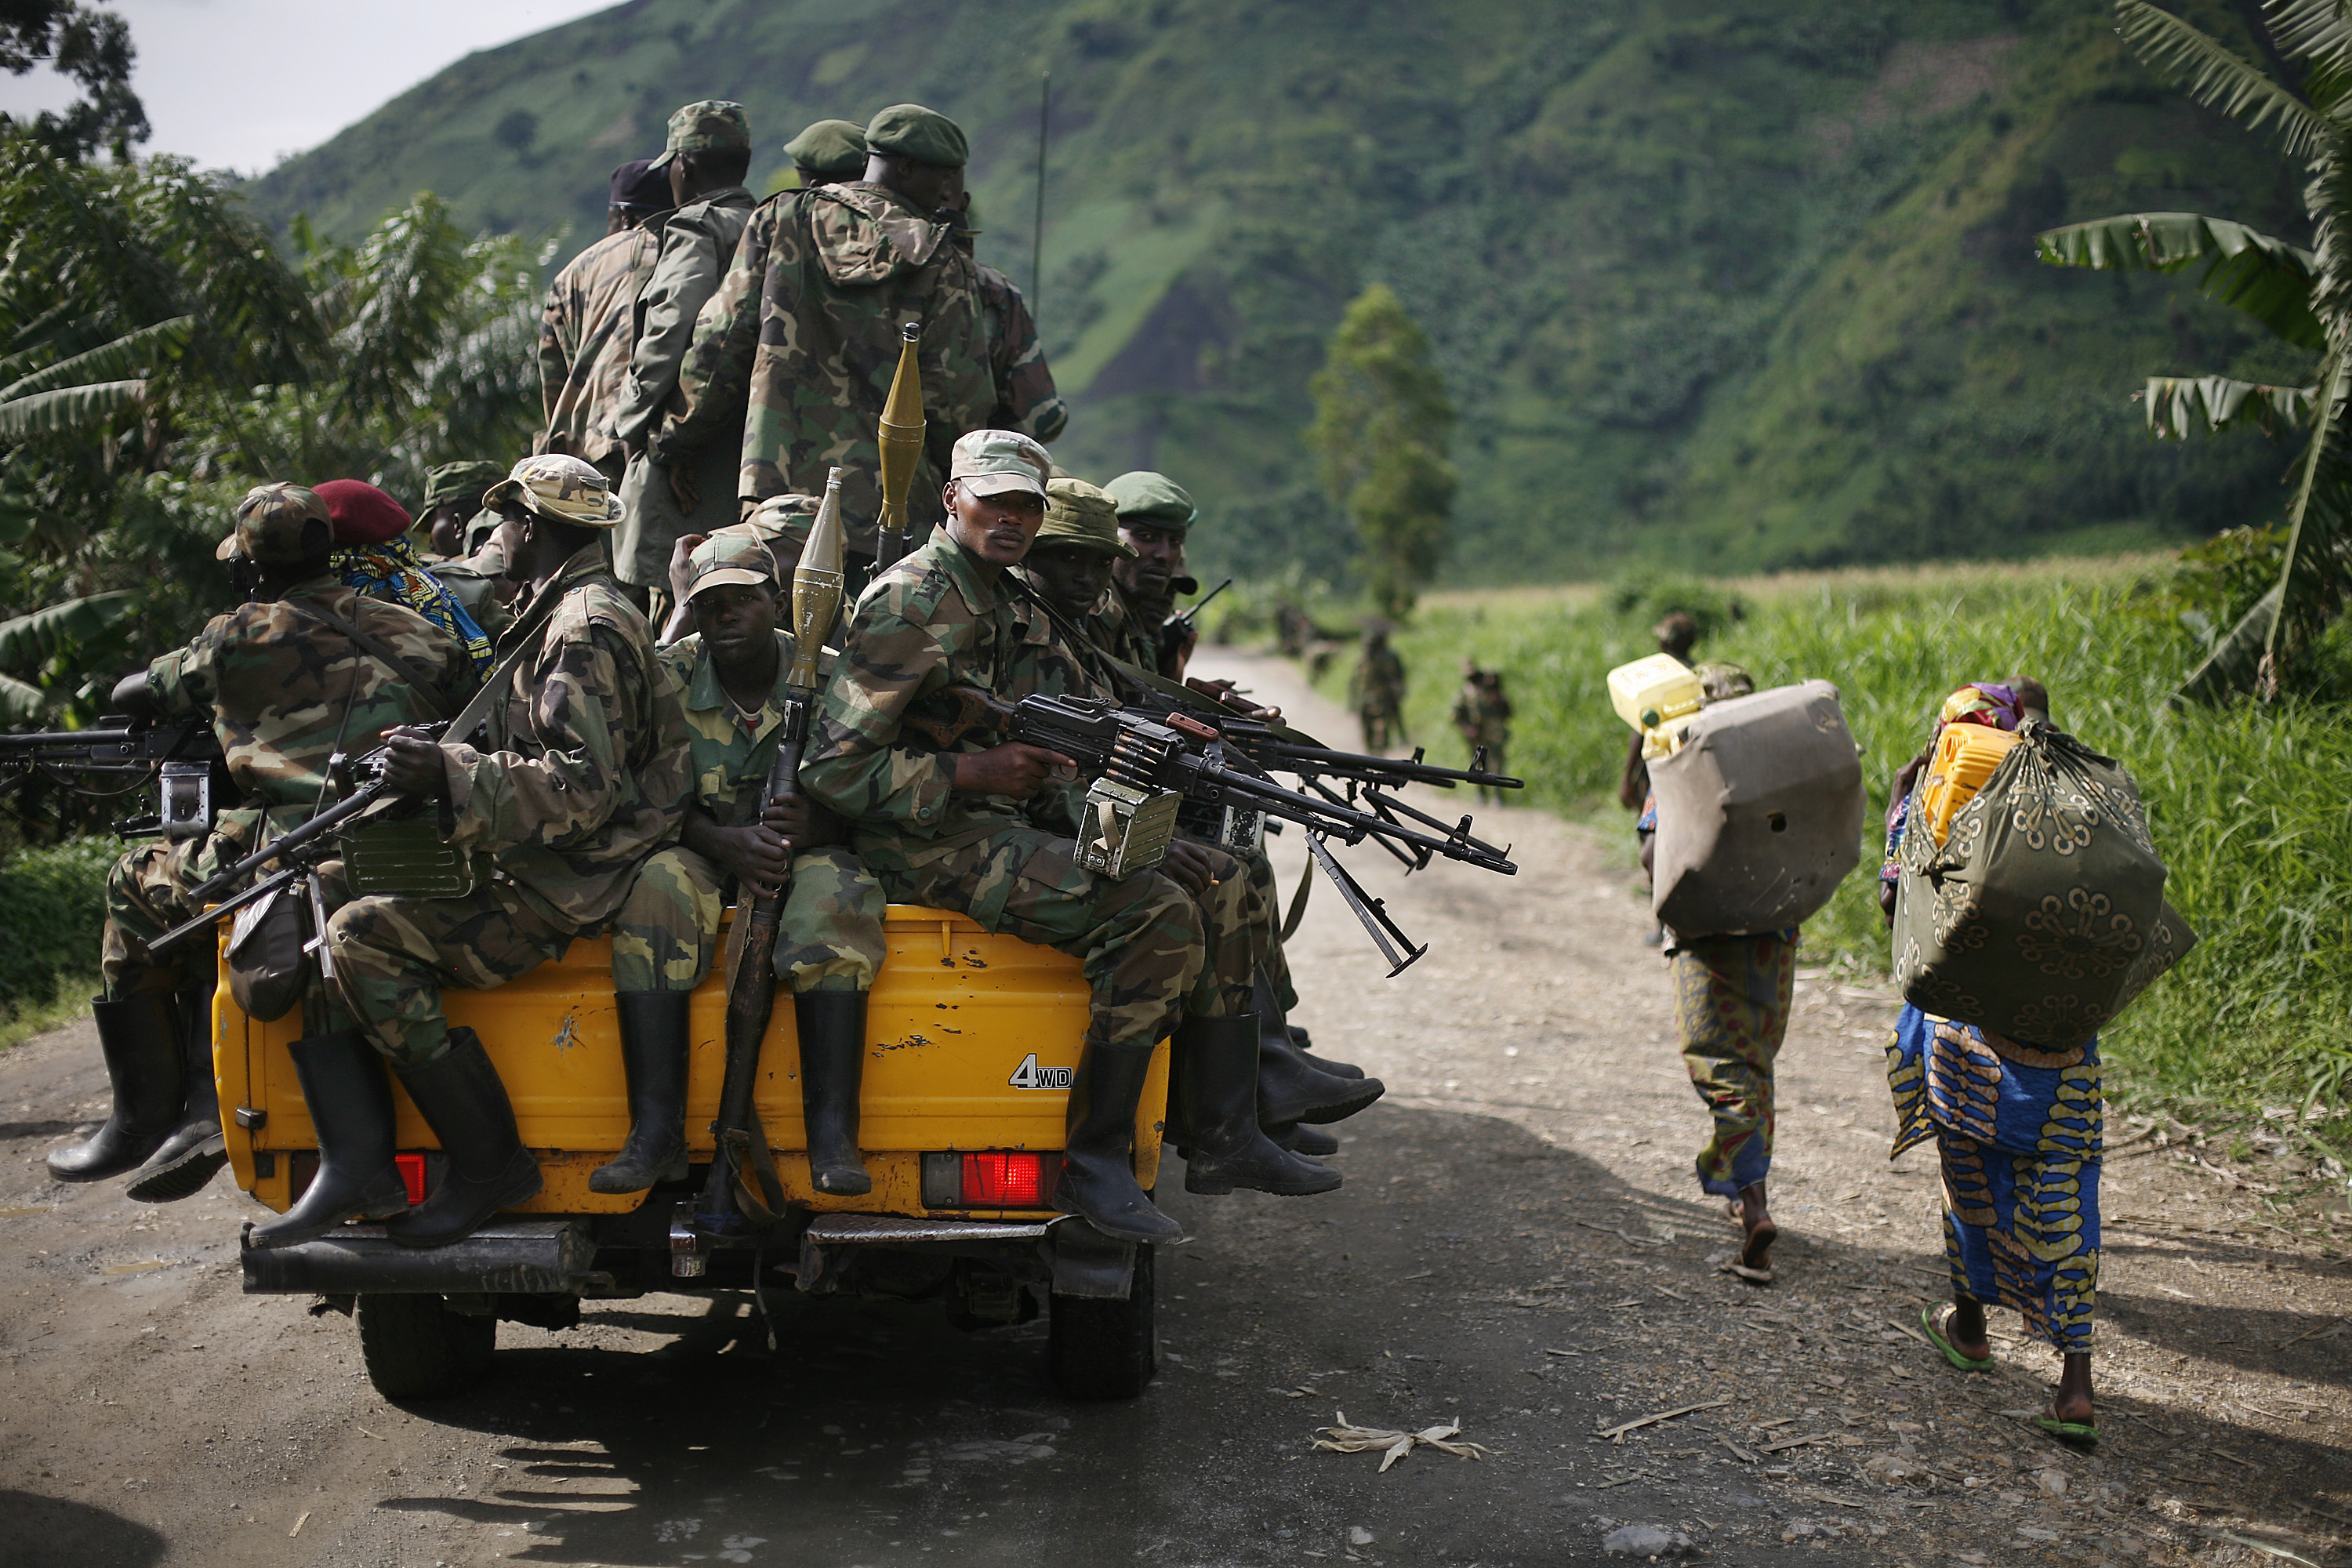 Policy Alert: Rebels Surrendering in Eastern Congo - Time for Feingold and Robinson to Act